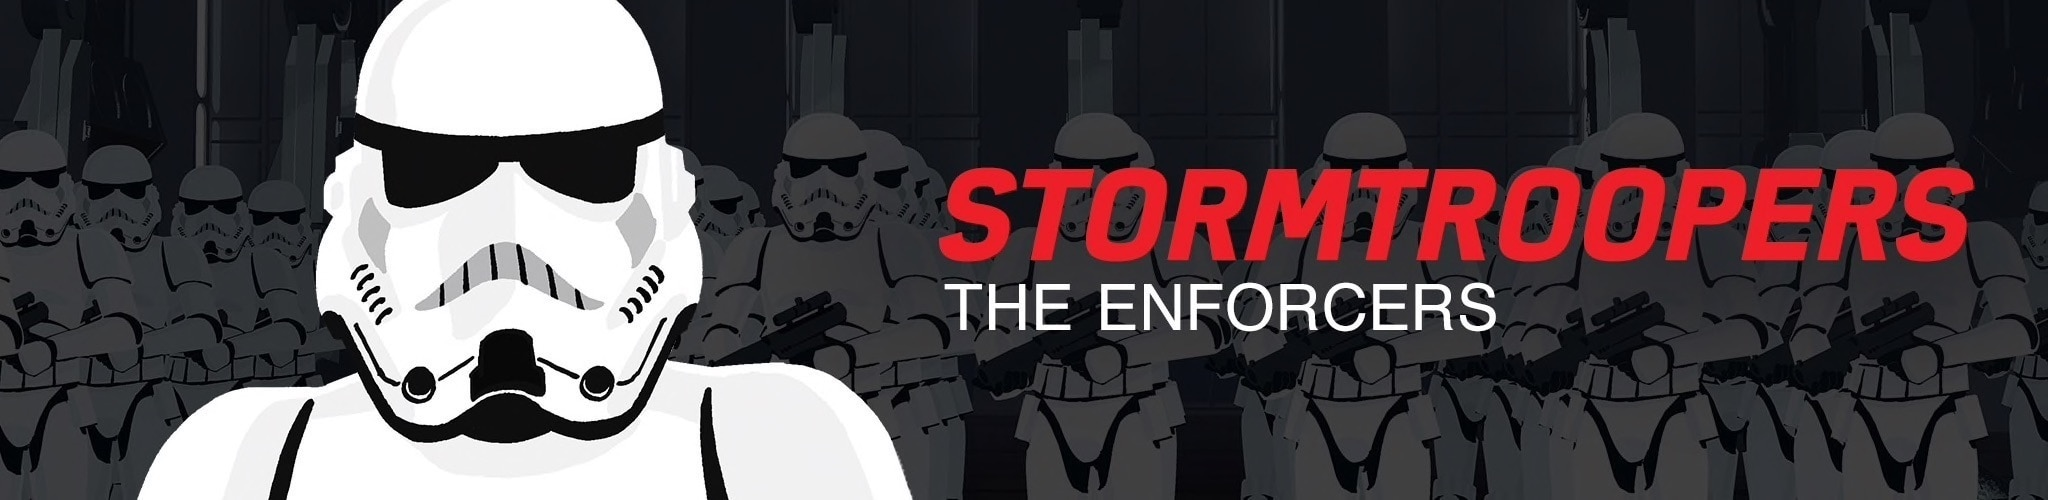 Stormtroopers - The Enforcers